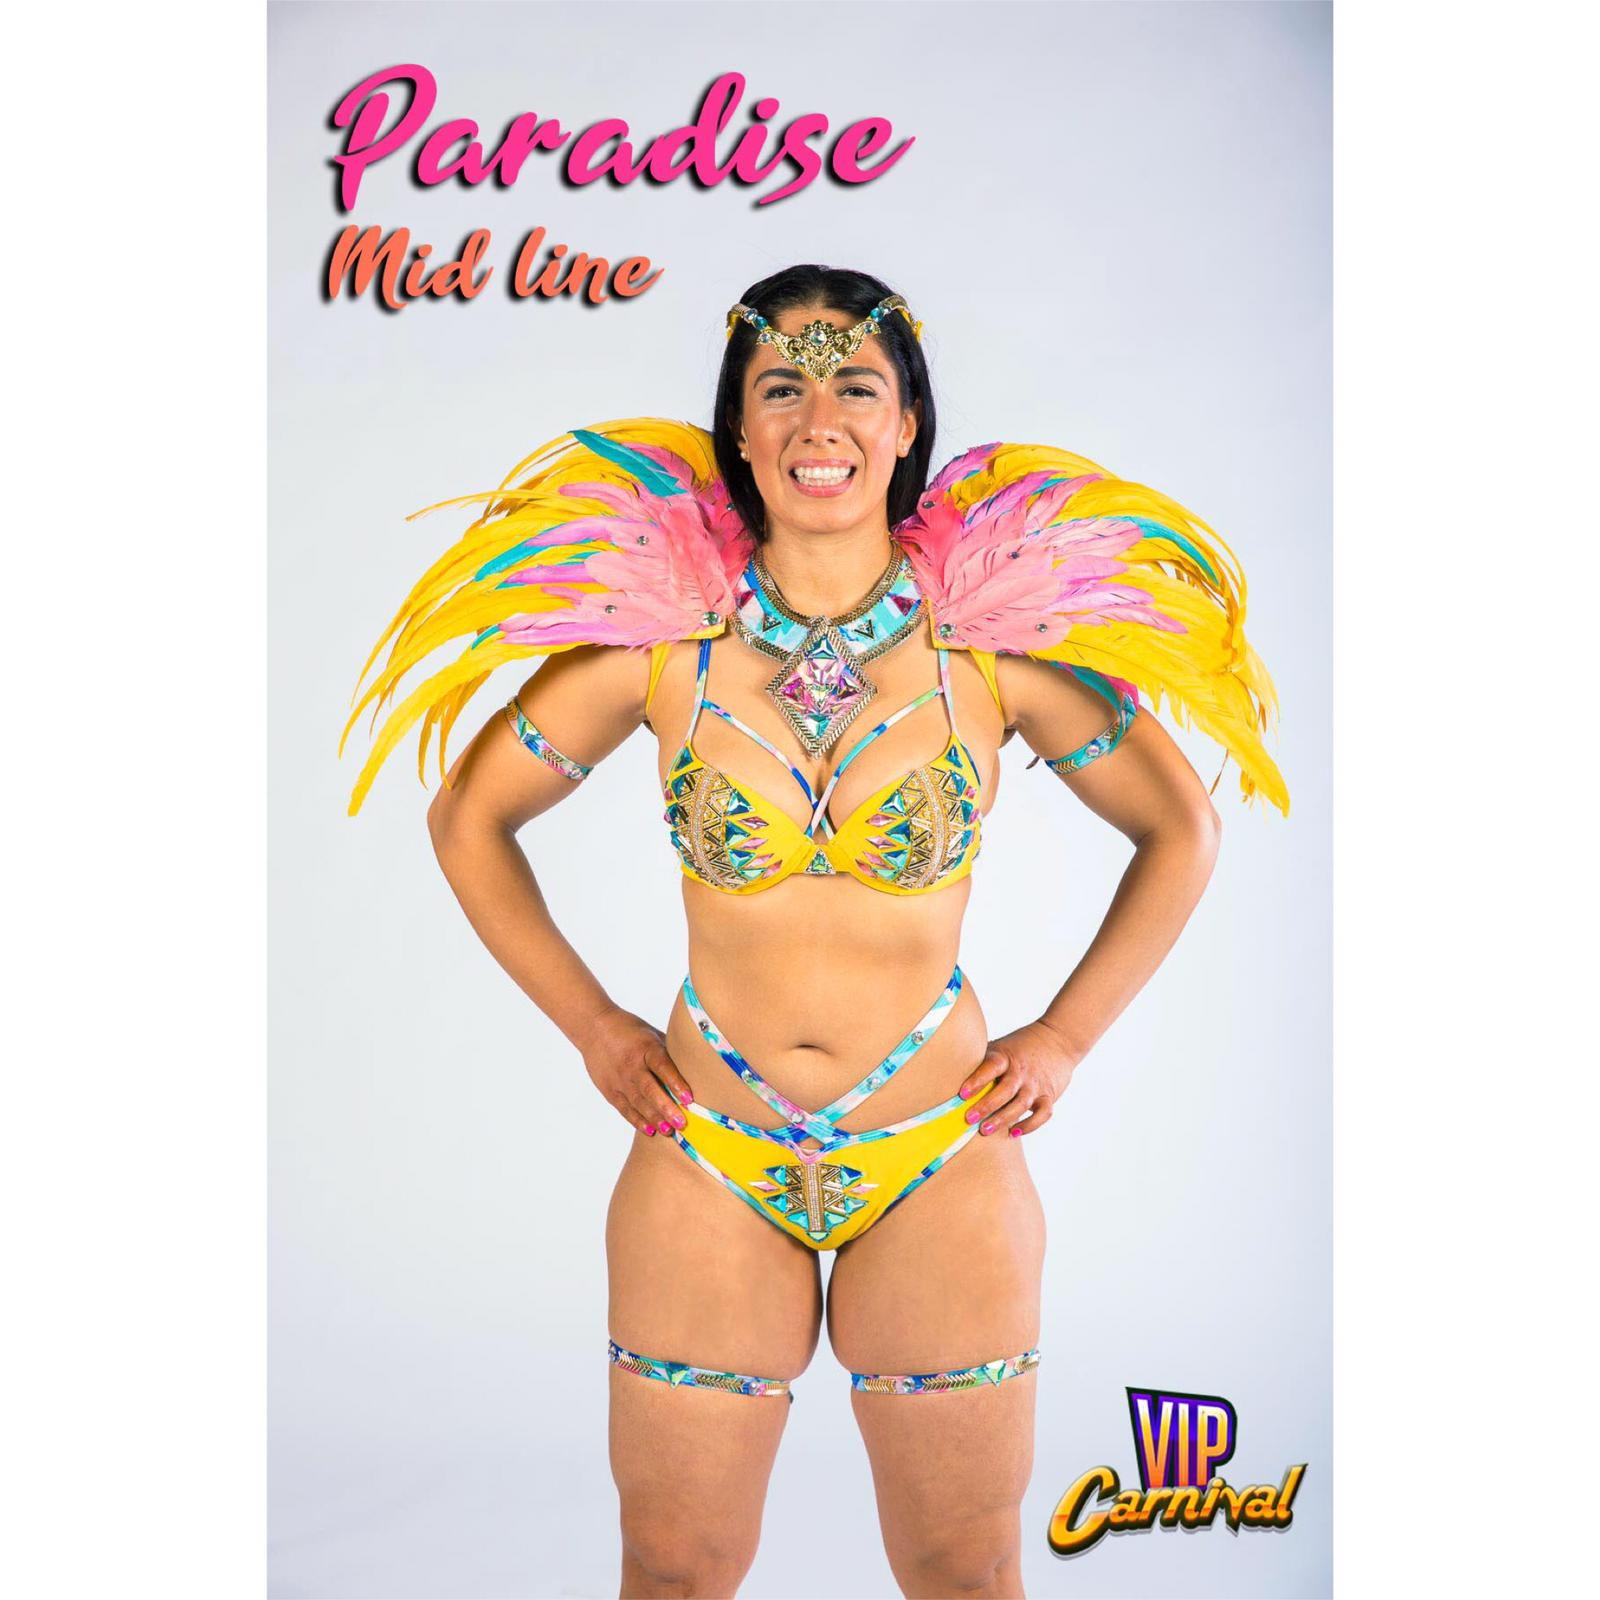 Hourglass Workout Caribana Costume and Fitness Package